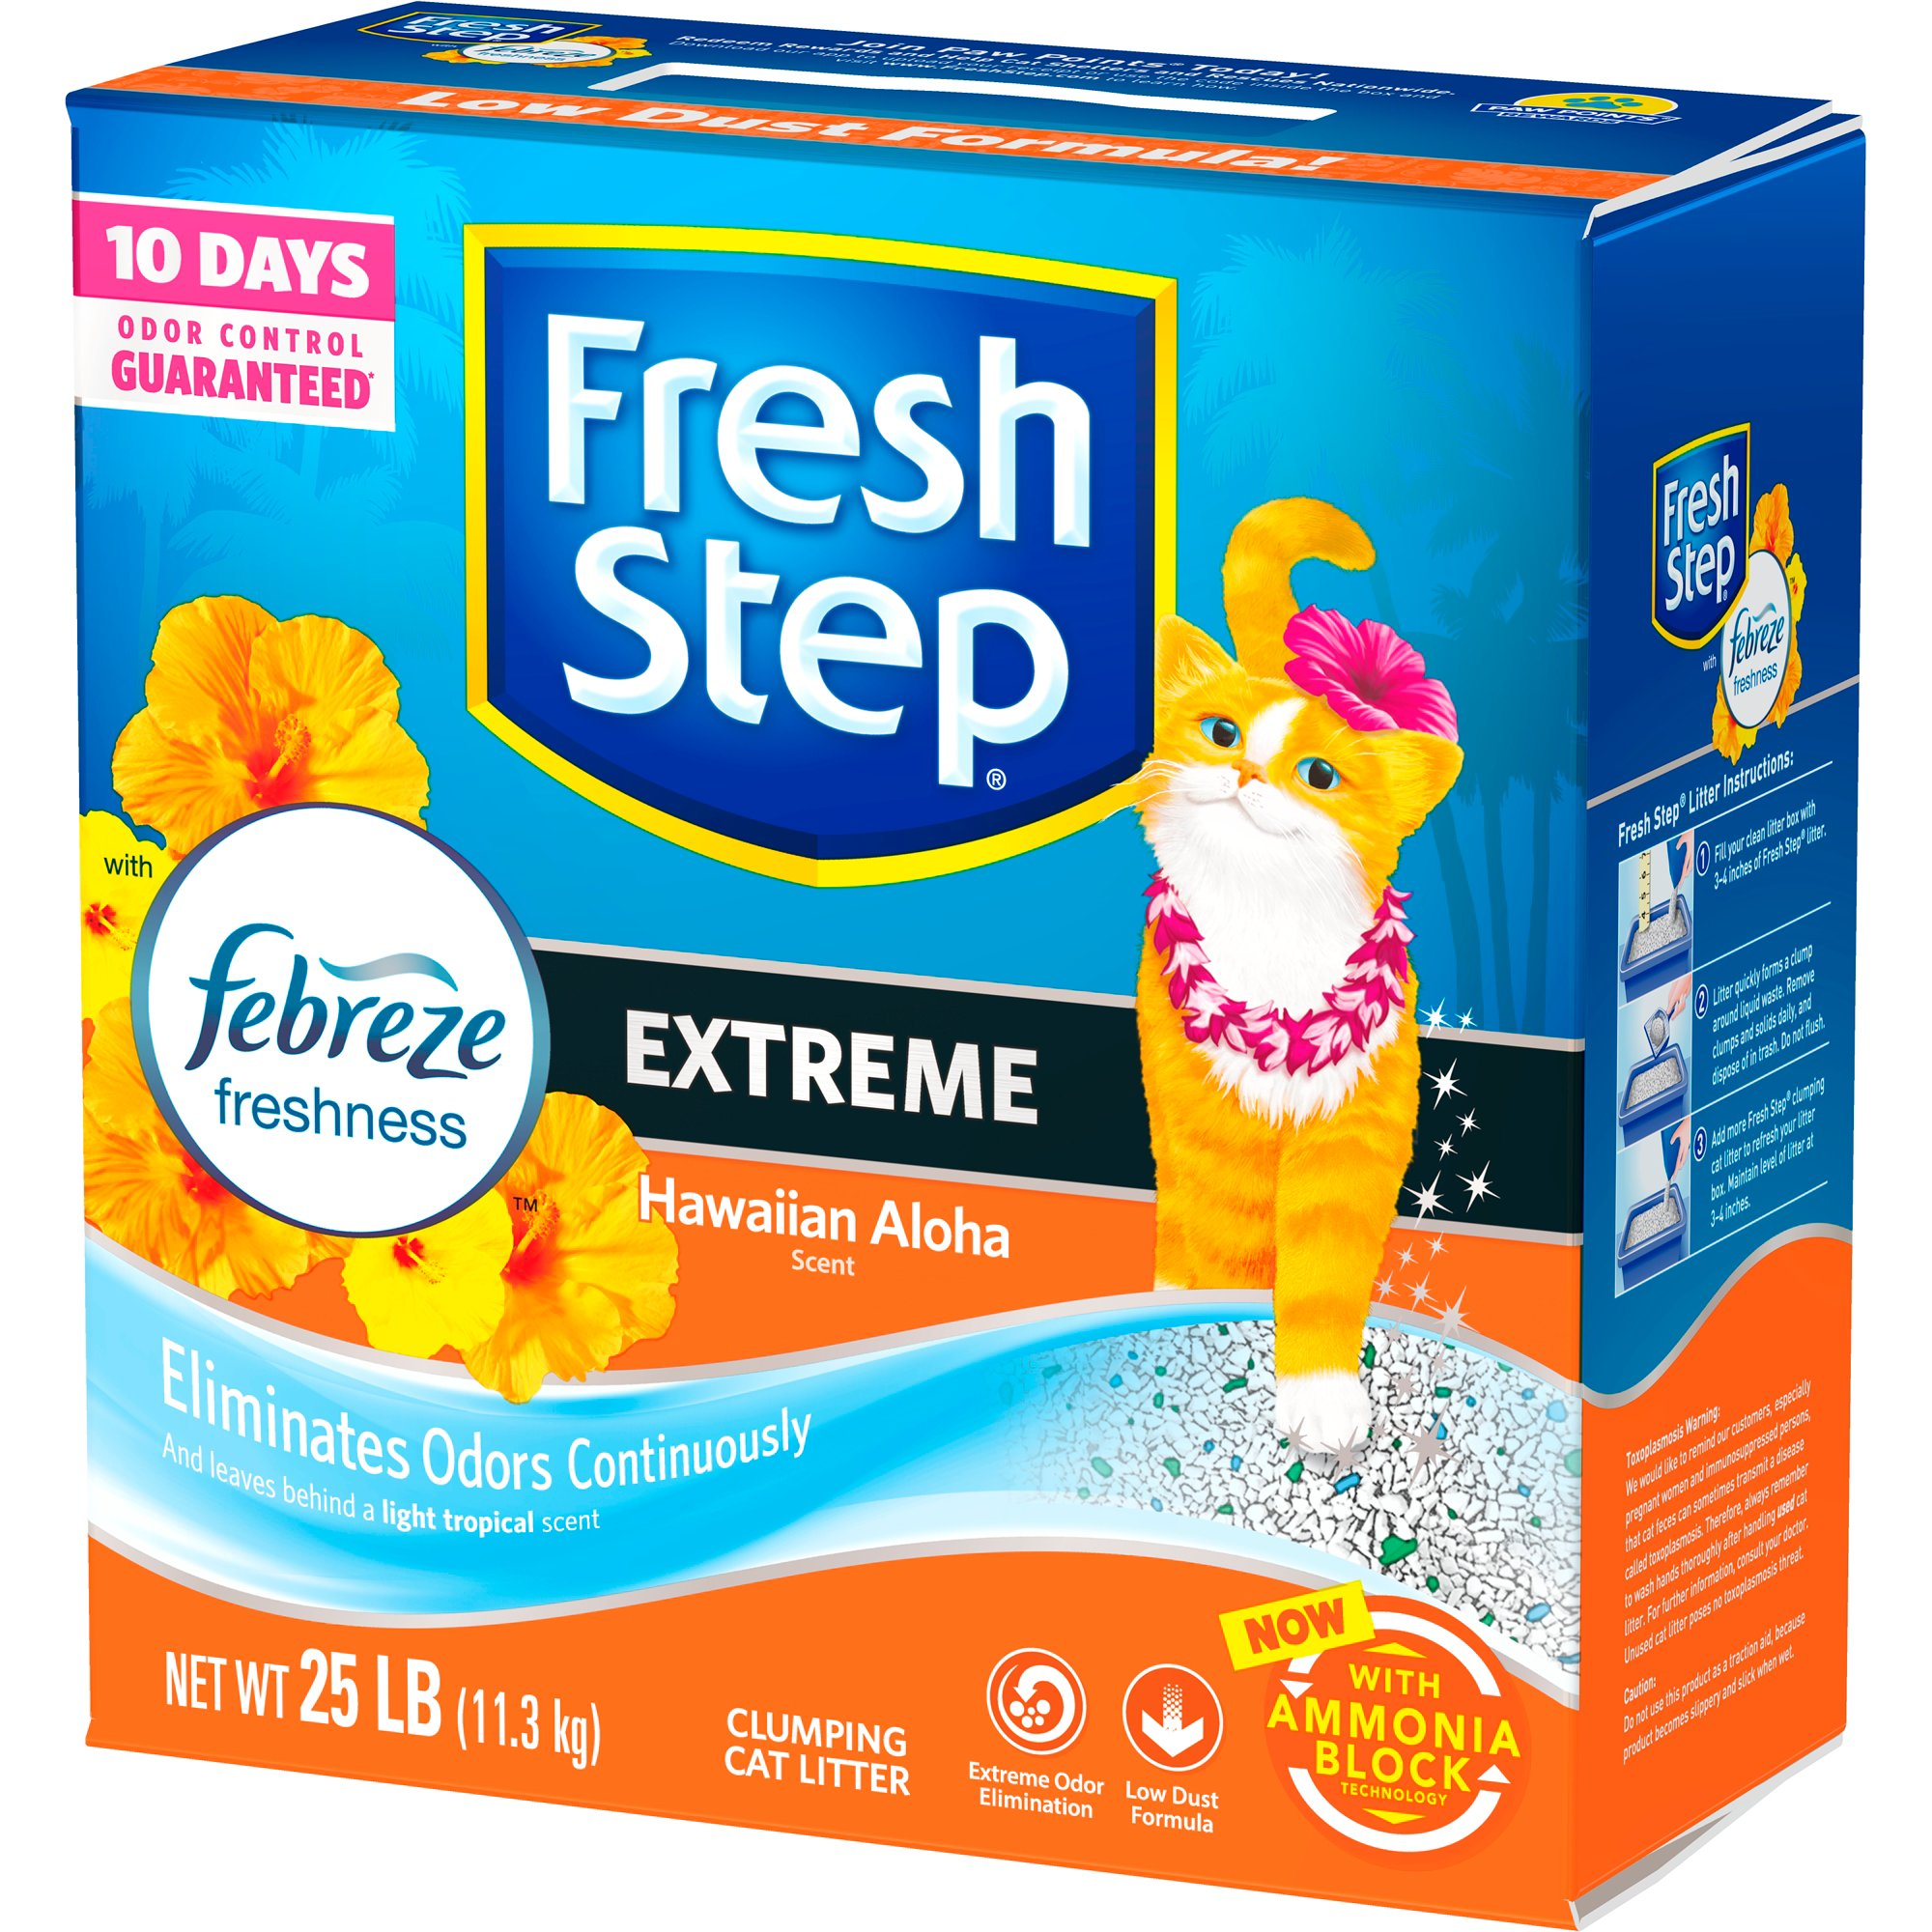 Fresh step with febreze extreme hawaiian aloha cat litter petco fandeluxe Gallery